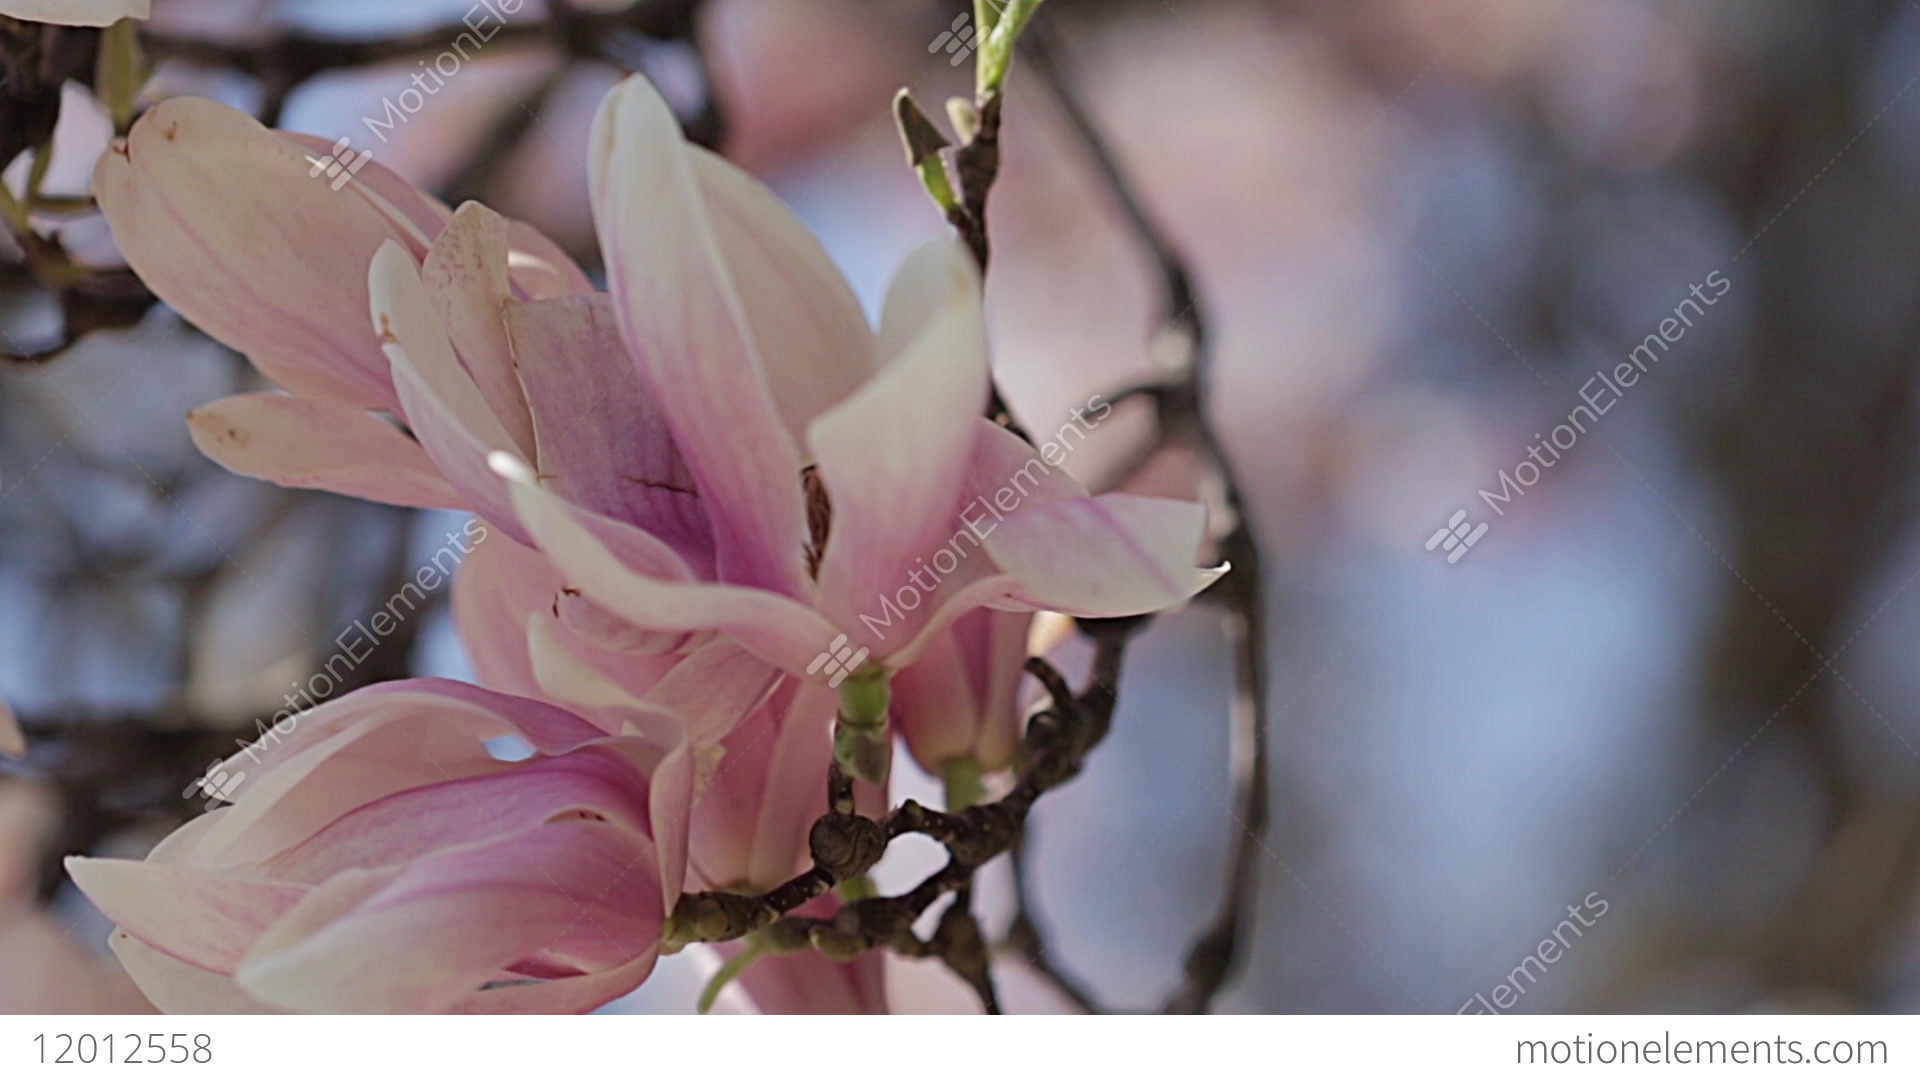 Magnolia Branches With Large Pink And White Flower Blossoms Blowing